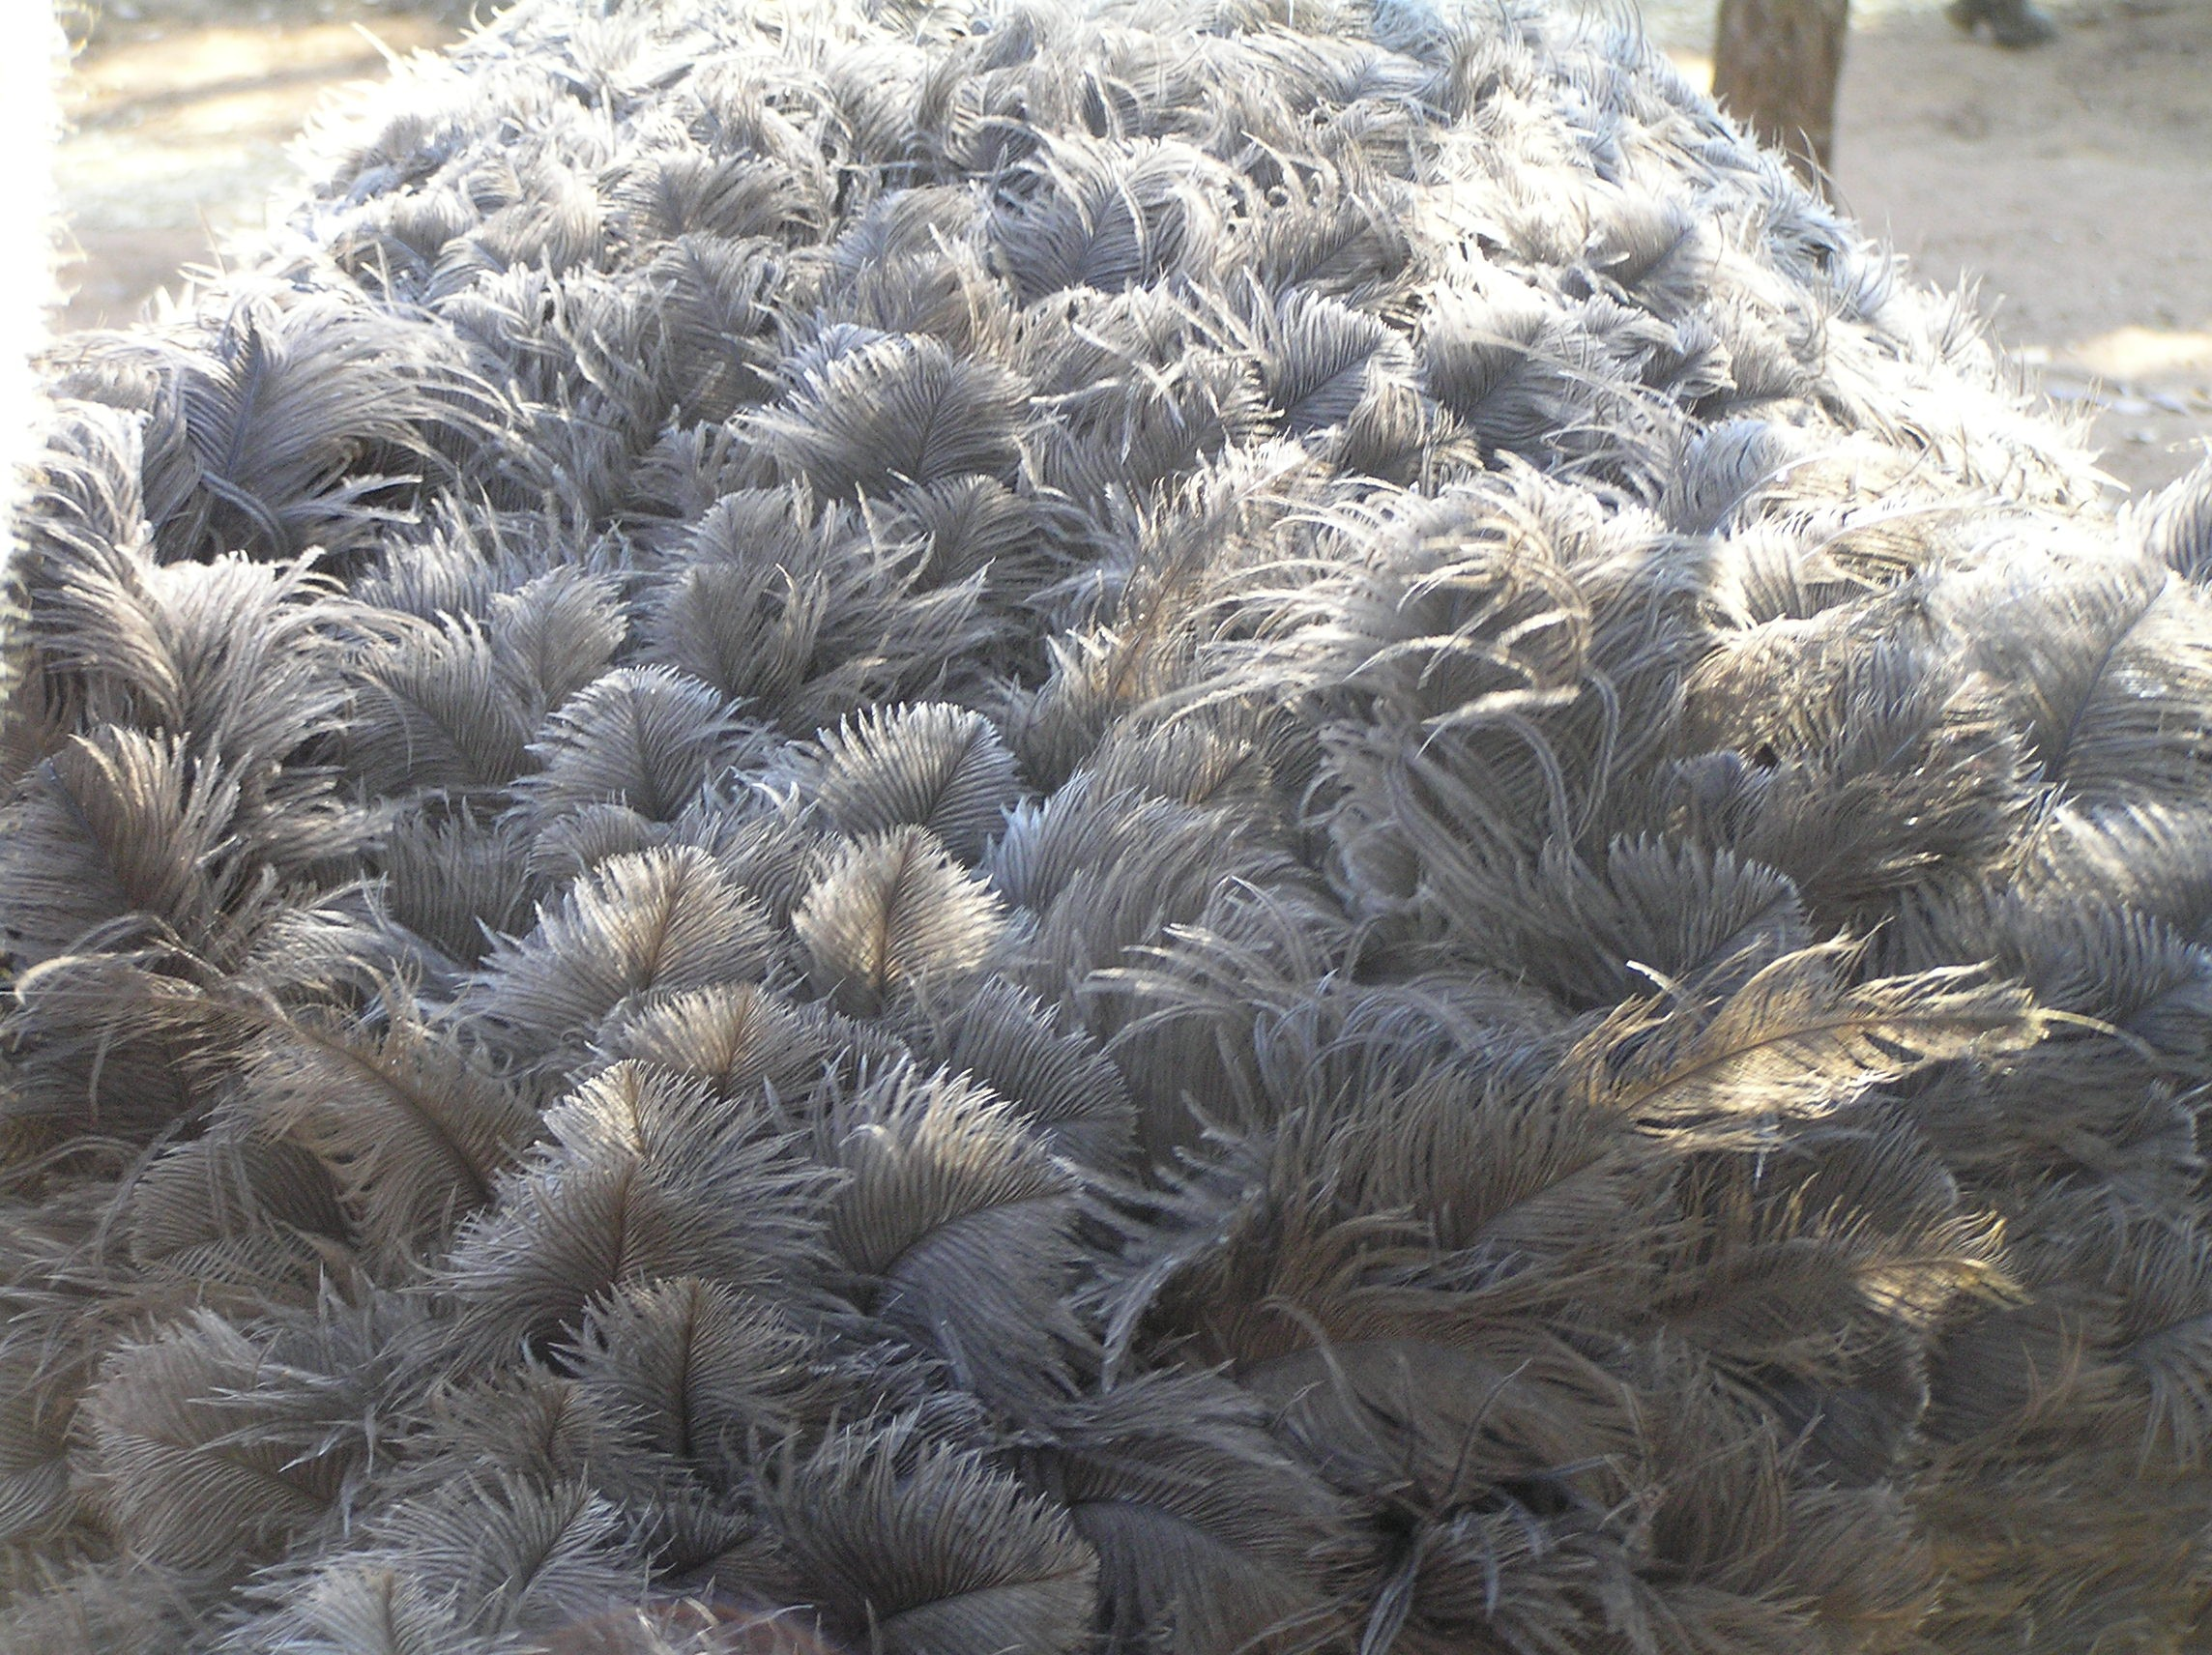 http://jbryant.eu/images/OstrichFeathers.jpg